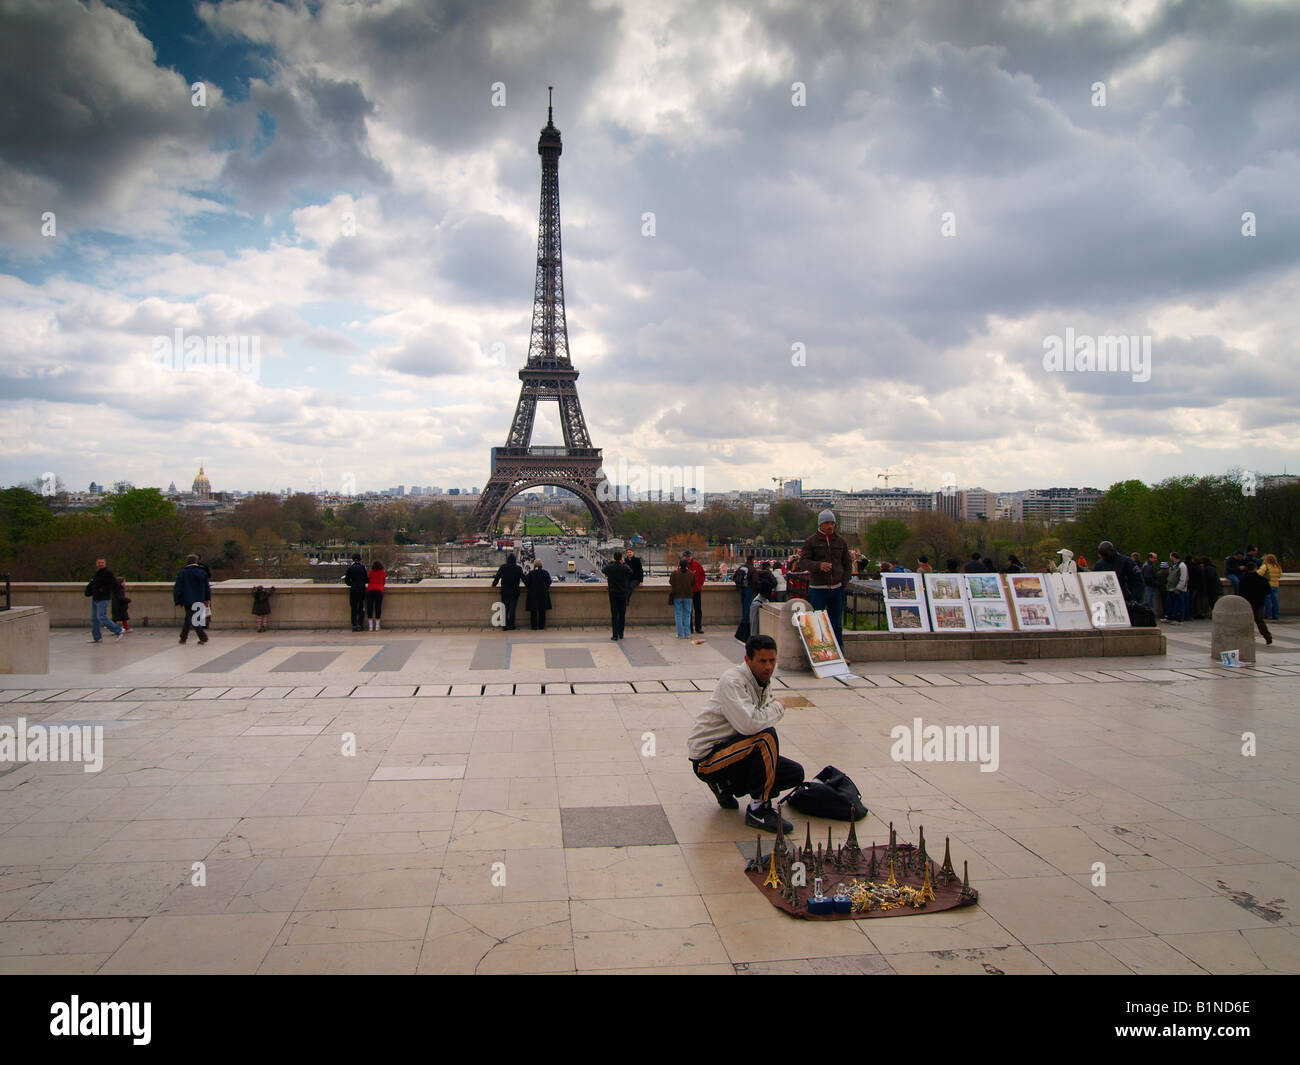 Man selling little Eiffel towers as souvenirs Trocadero Paris France - Stock Image